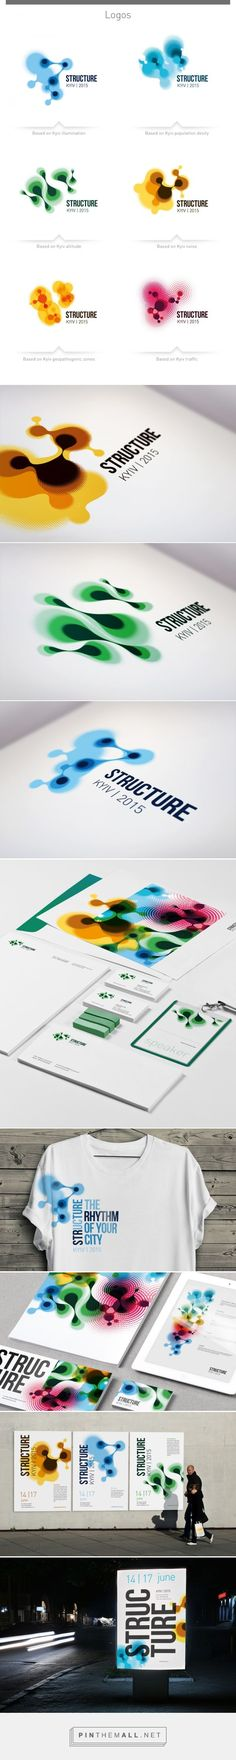 STRUCTURE | Urban Fest on Behance - created via http://pinthemall.net